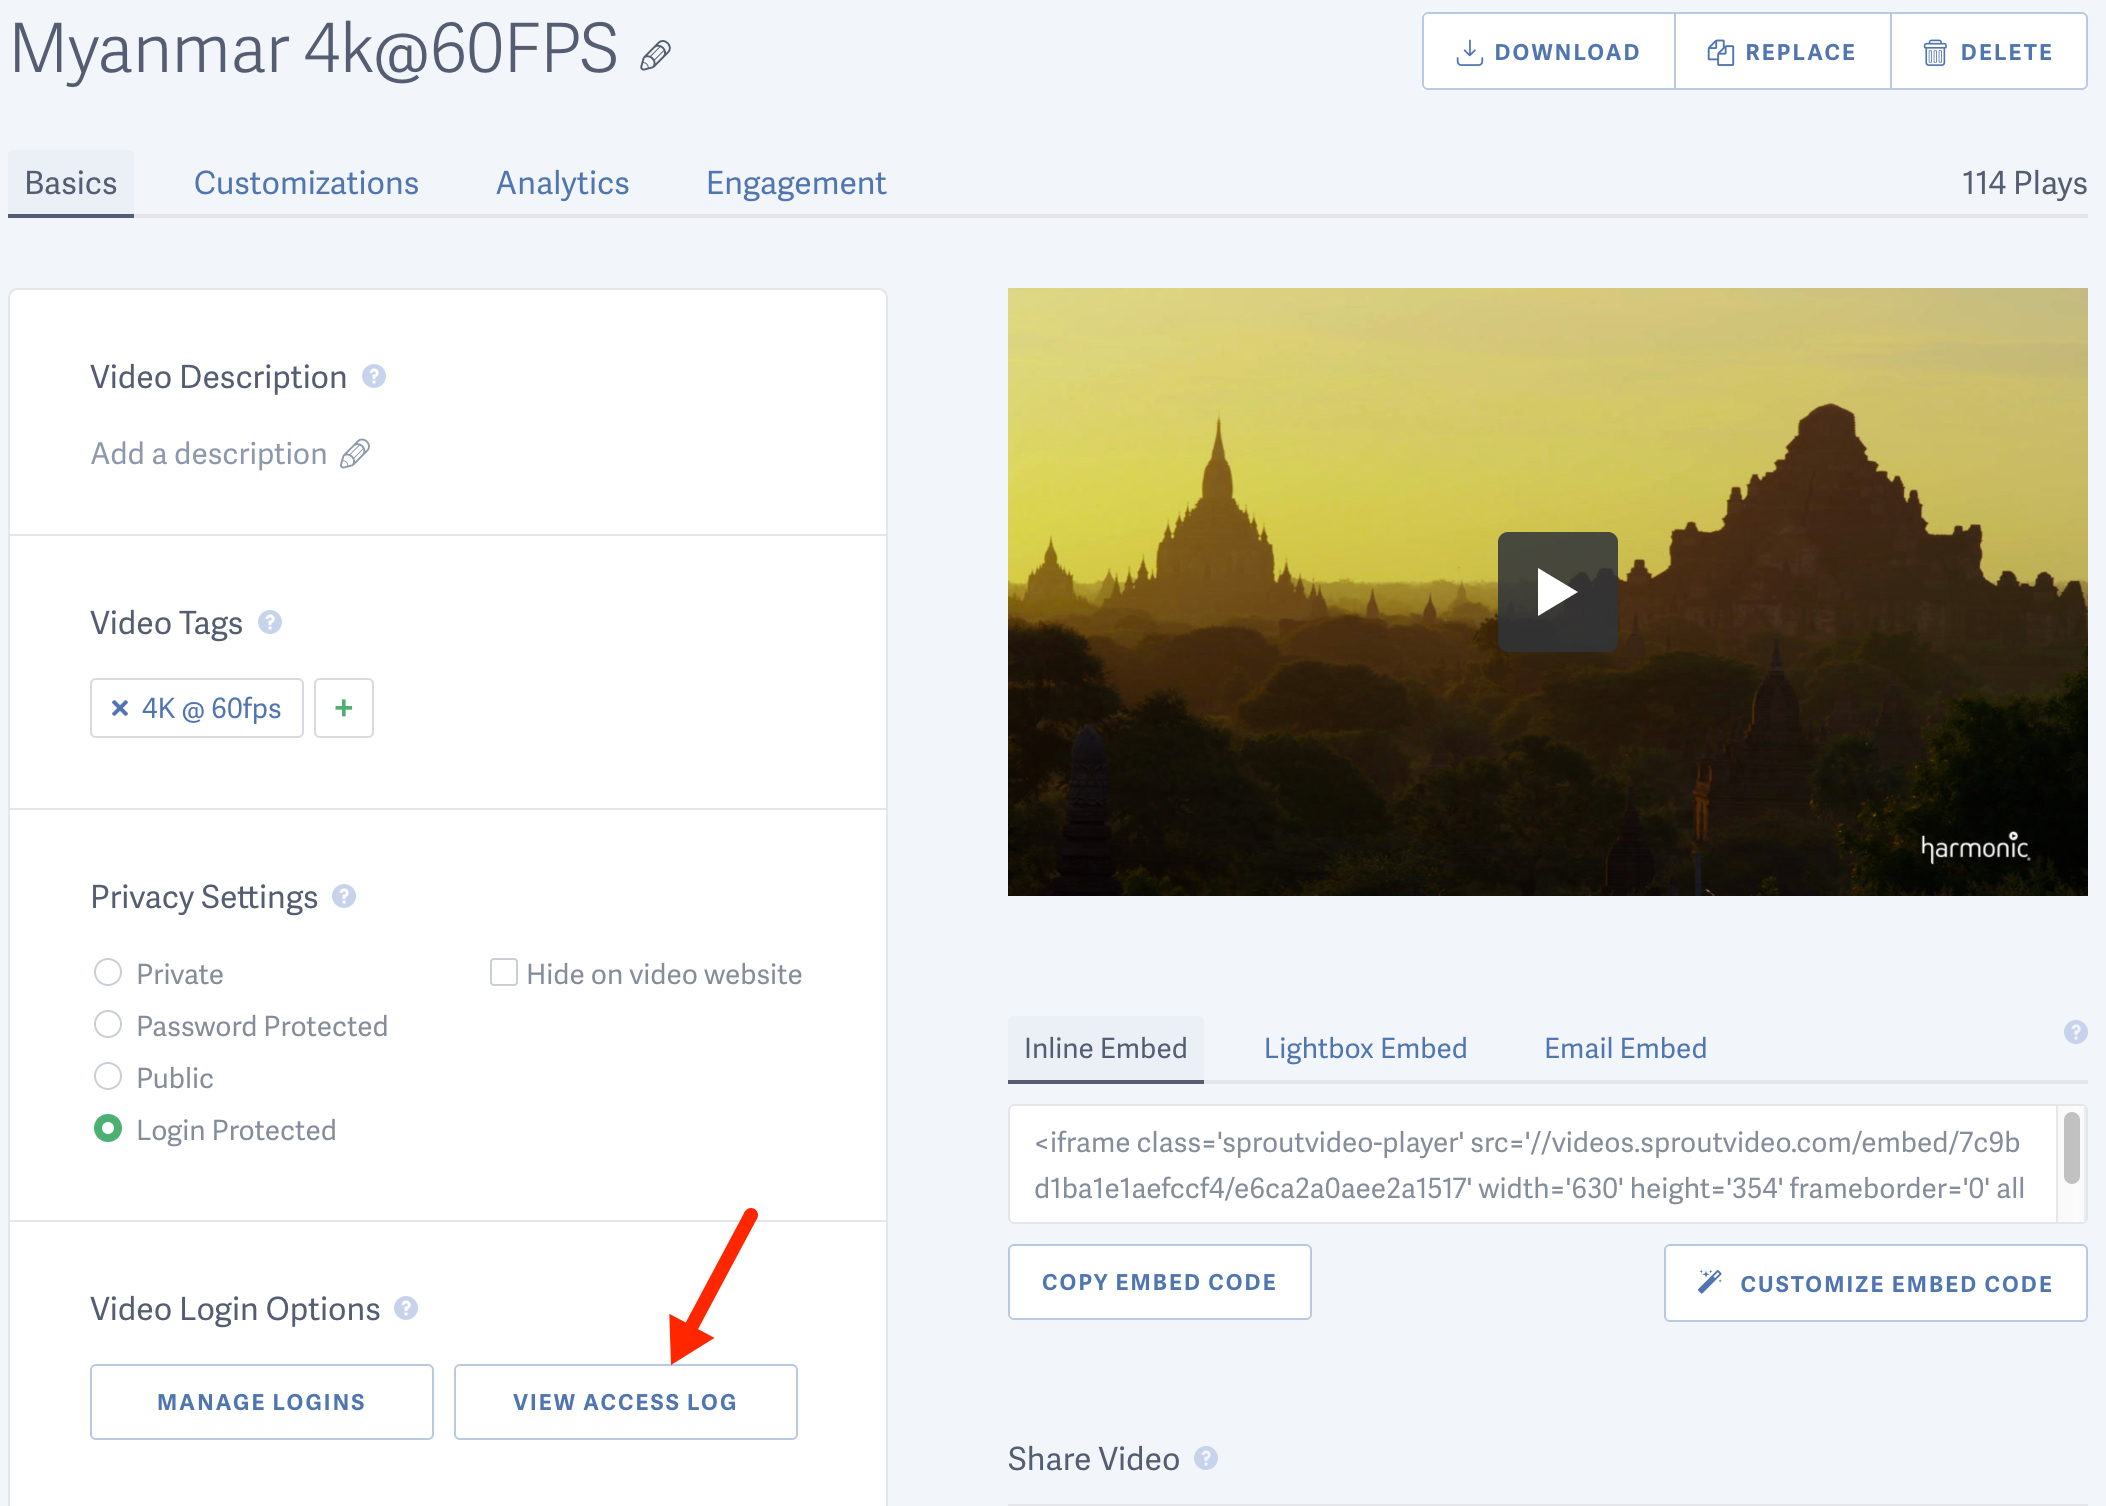 View the access log for a login protected video hosted on SproutVideo